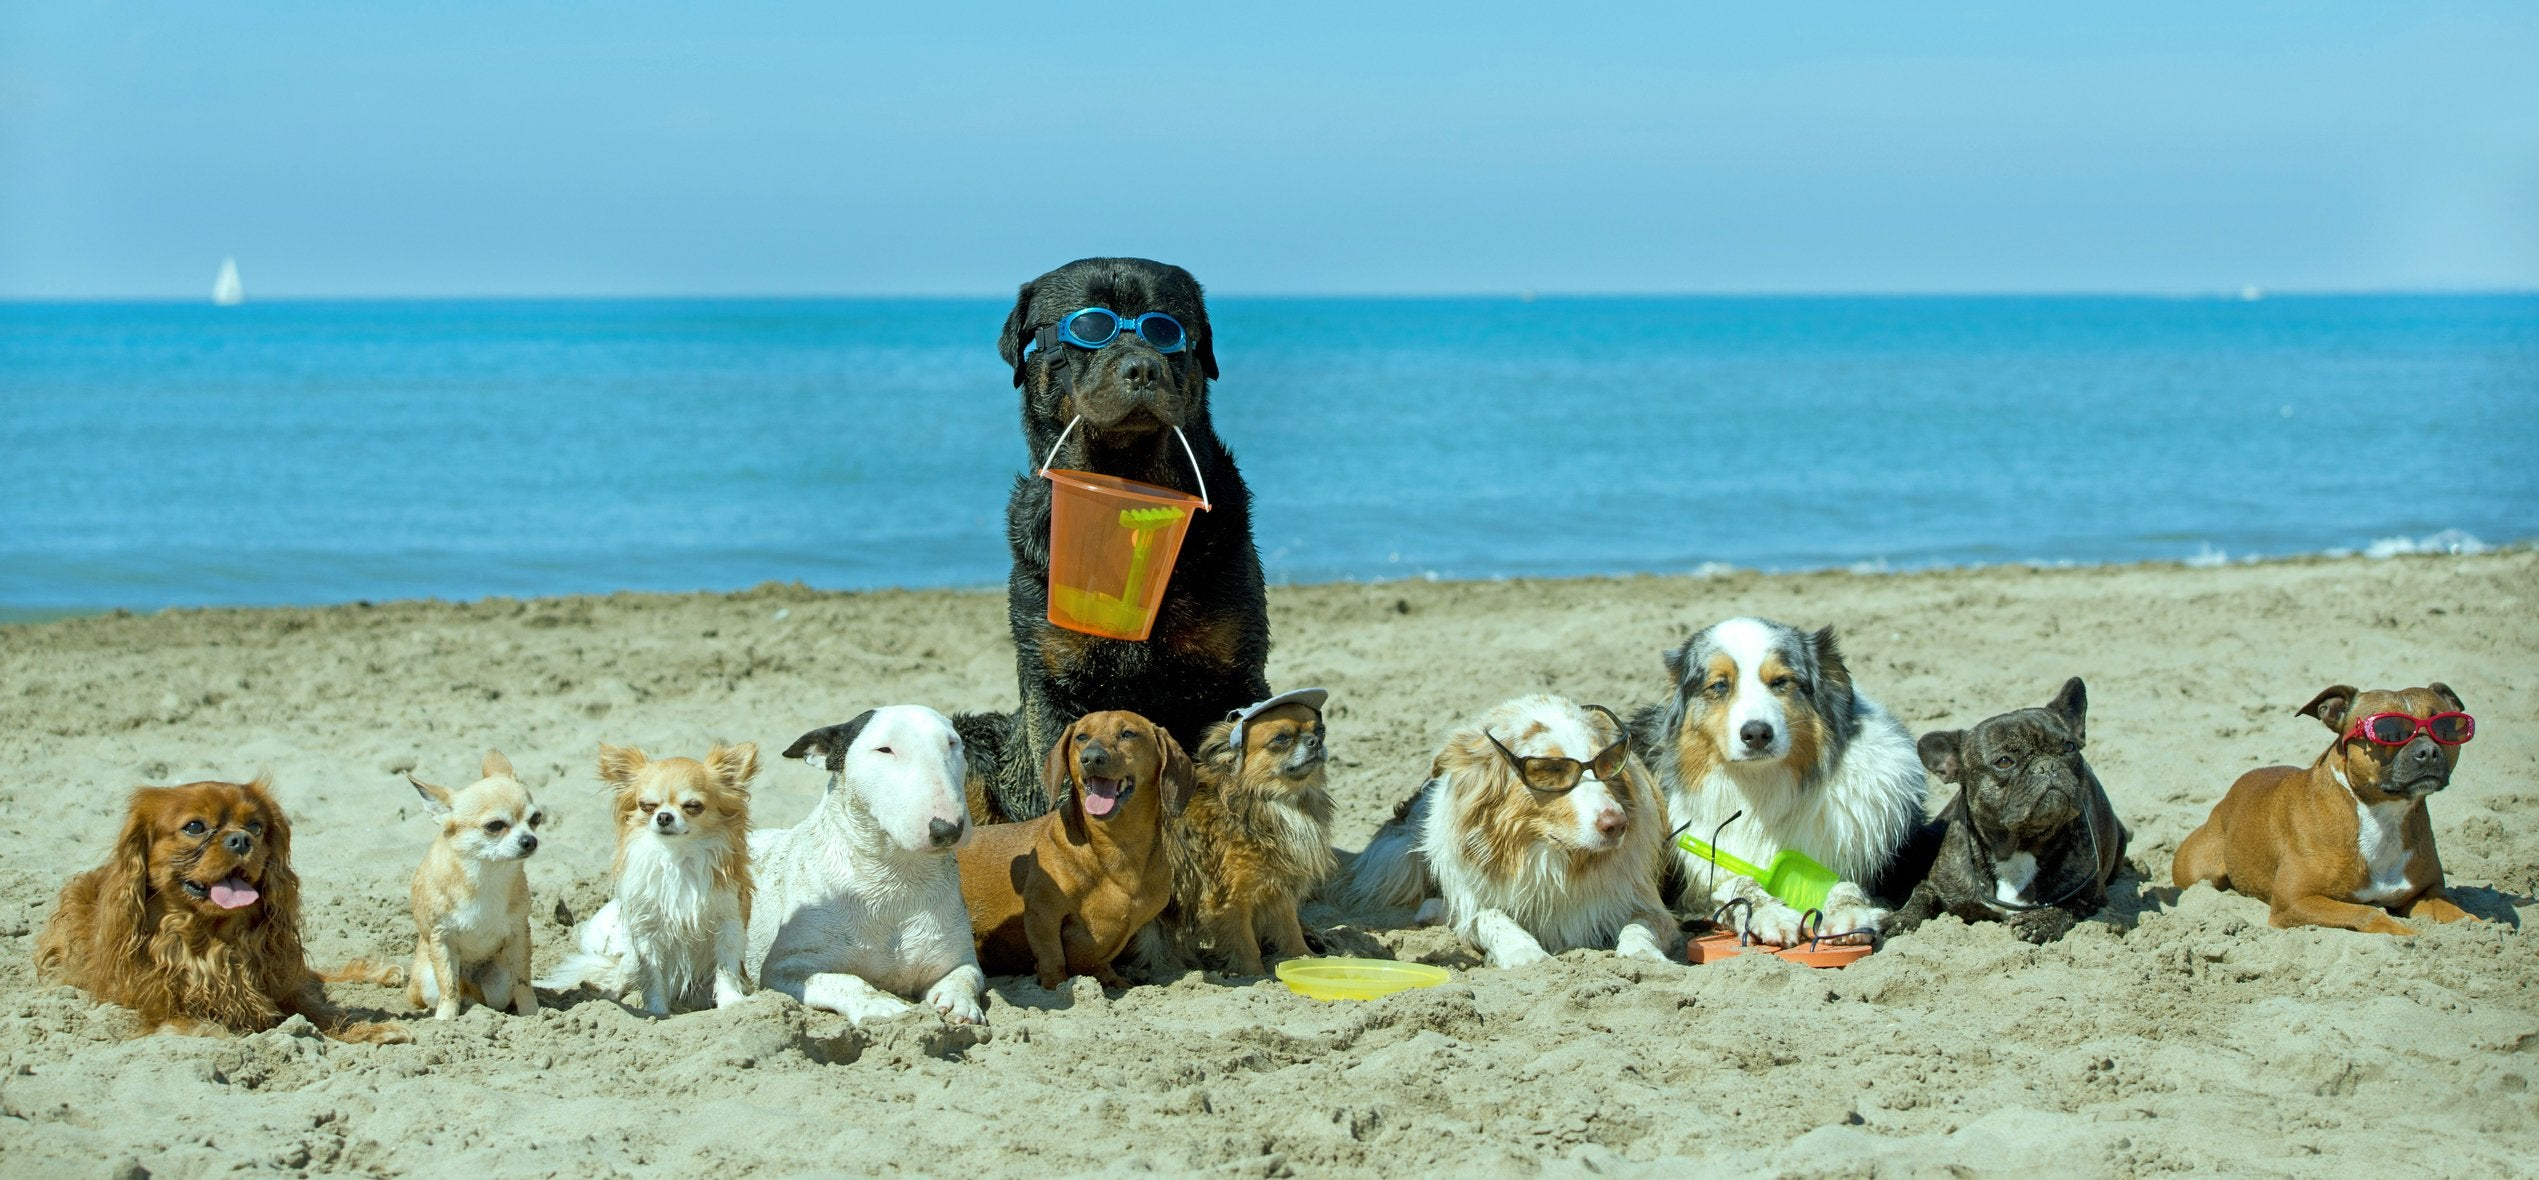 10 reasons to take your dog to the dog beach this summer